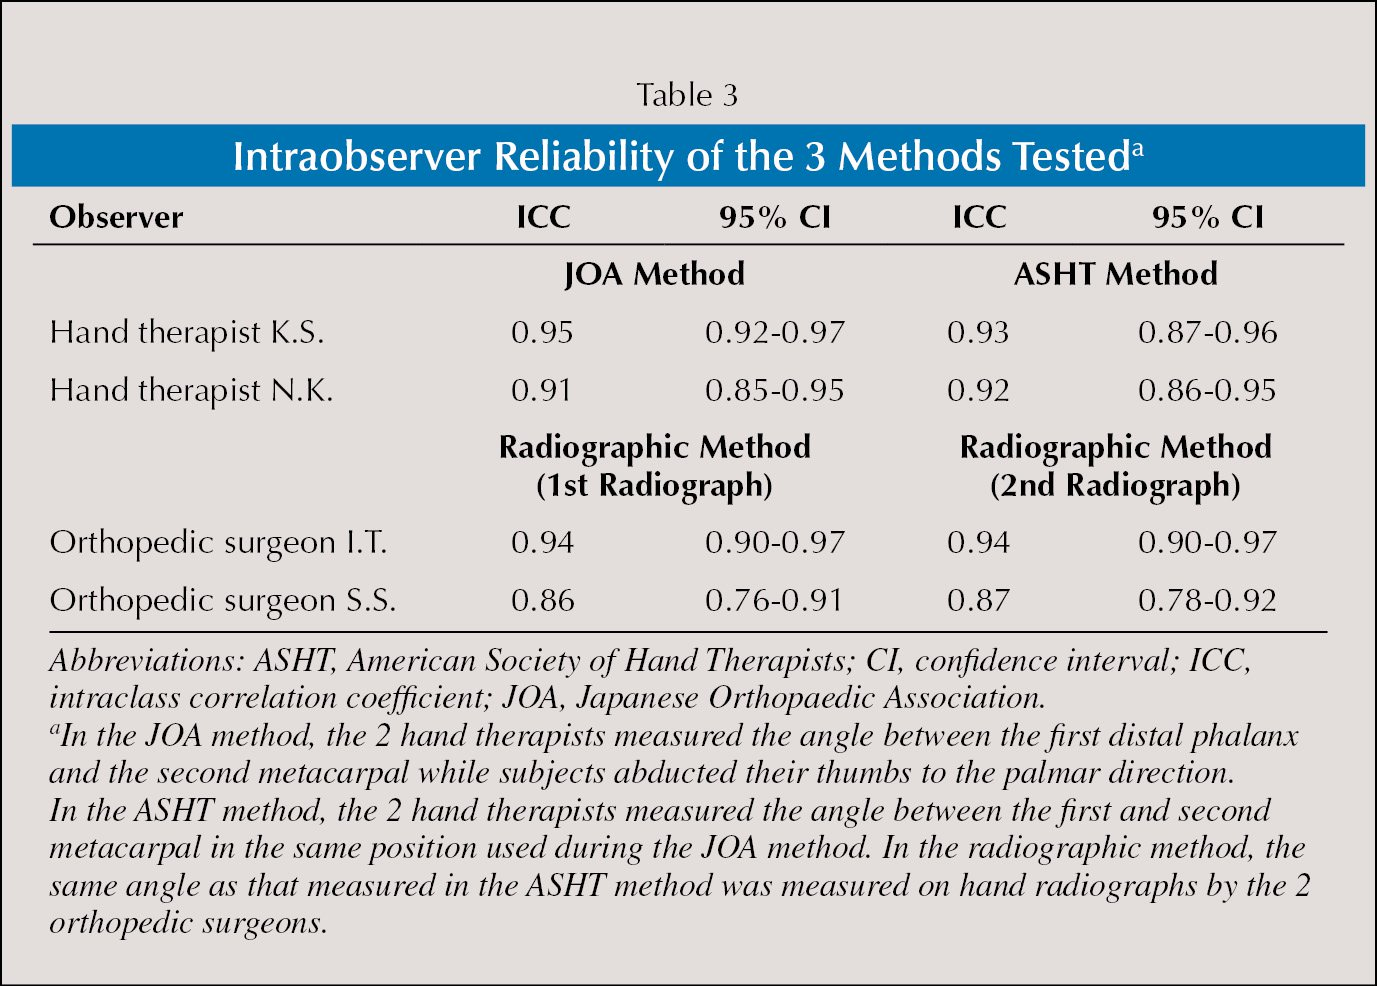 Intraobserver Reliability of the 3 Methods Testeda